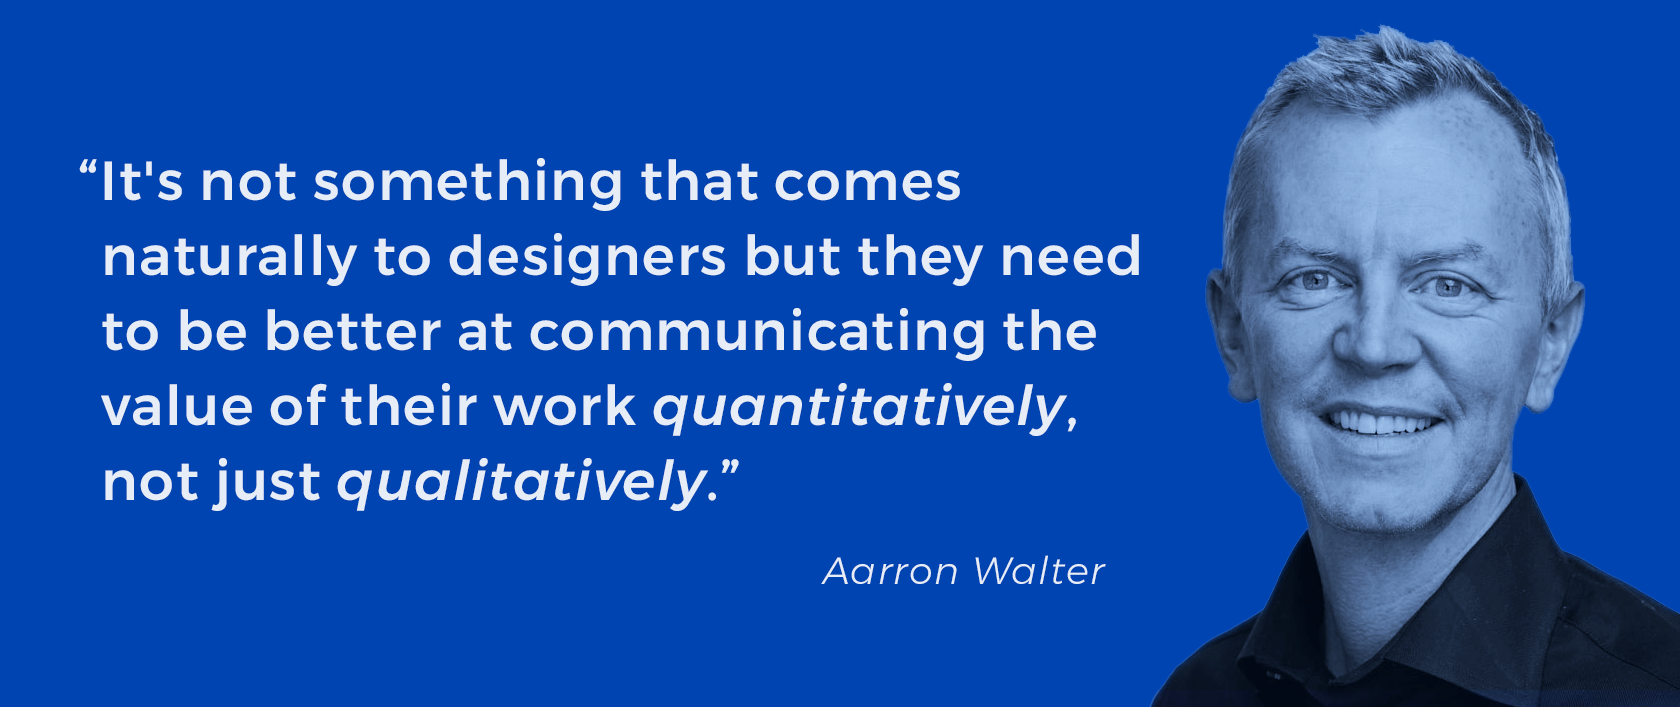 Designers and developers working together better.